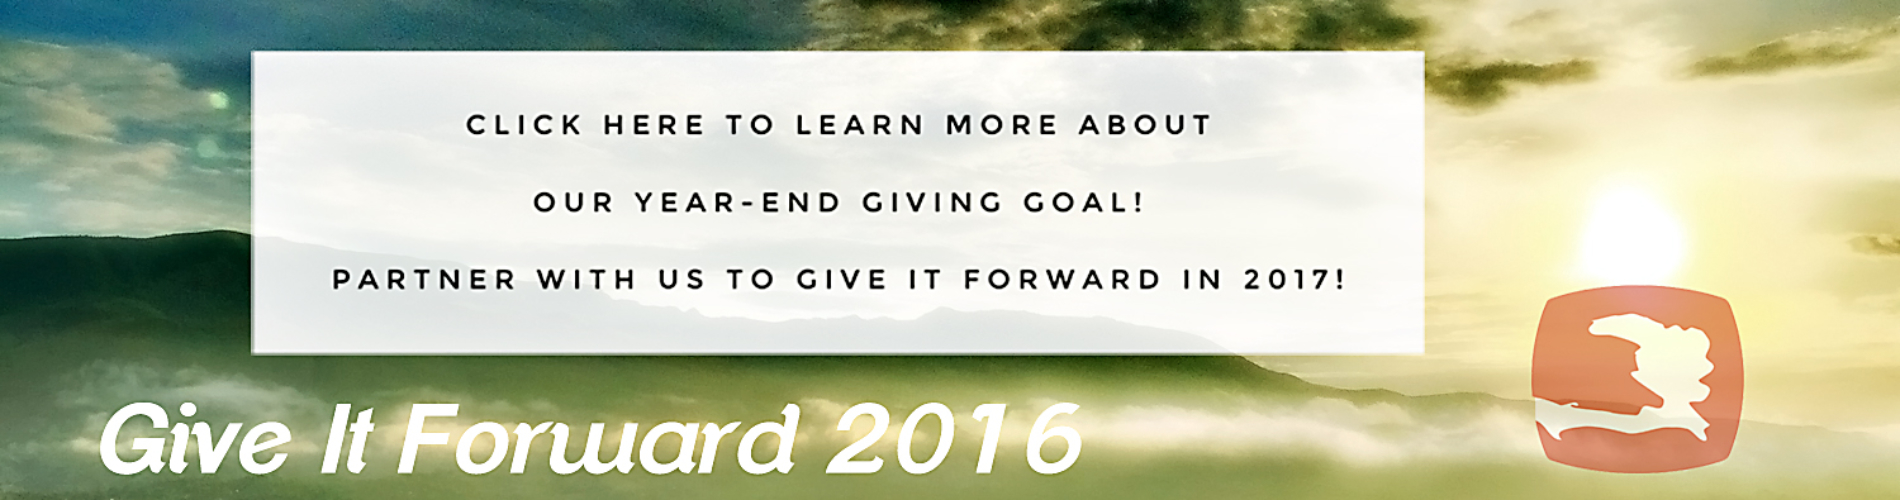 give-it-forward3